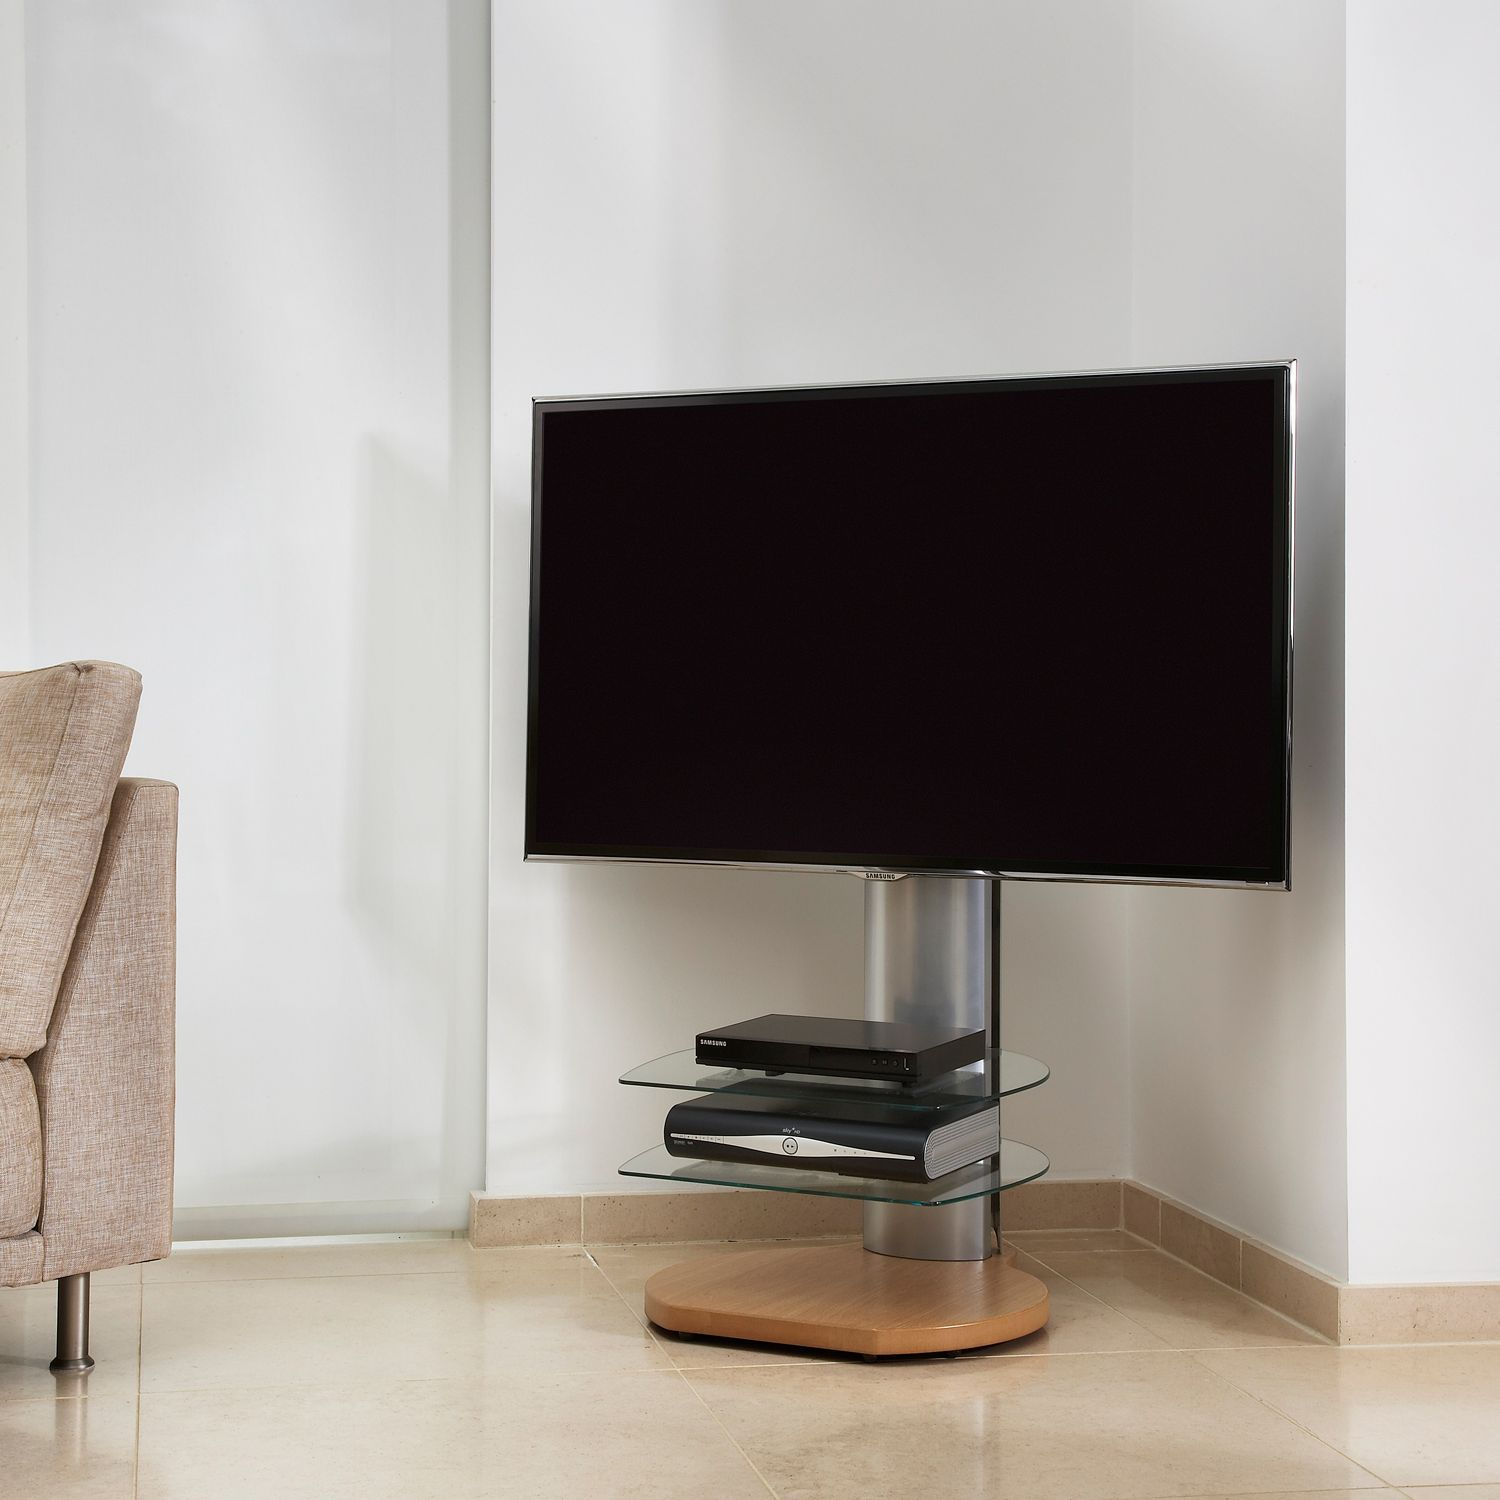 Off The Wall Origin Ii S4 Stand For Tvs Up To 55 With Sound Bar